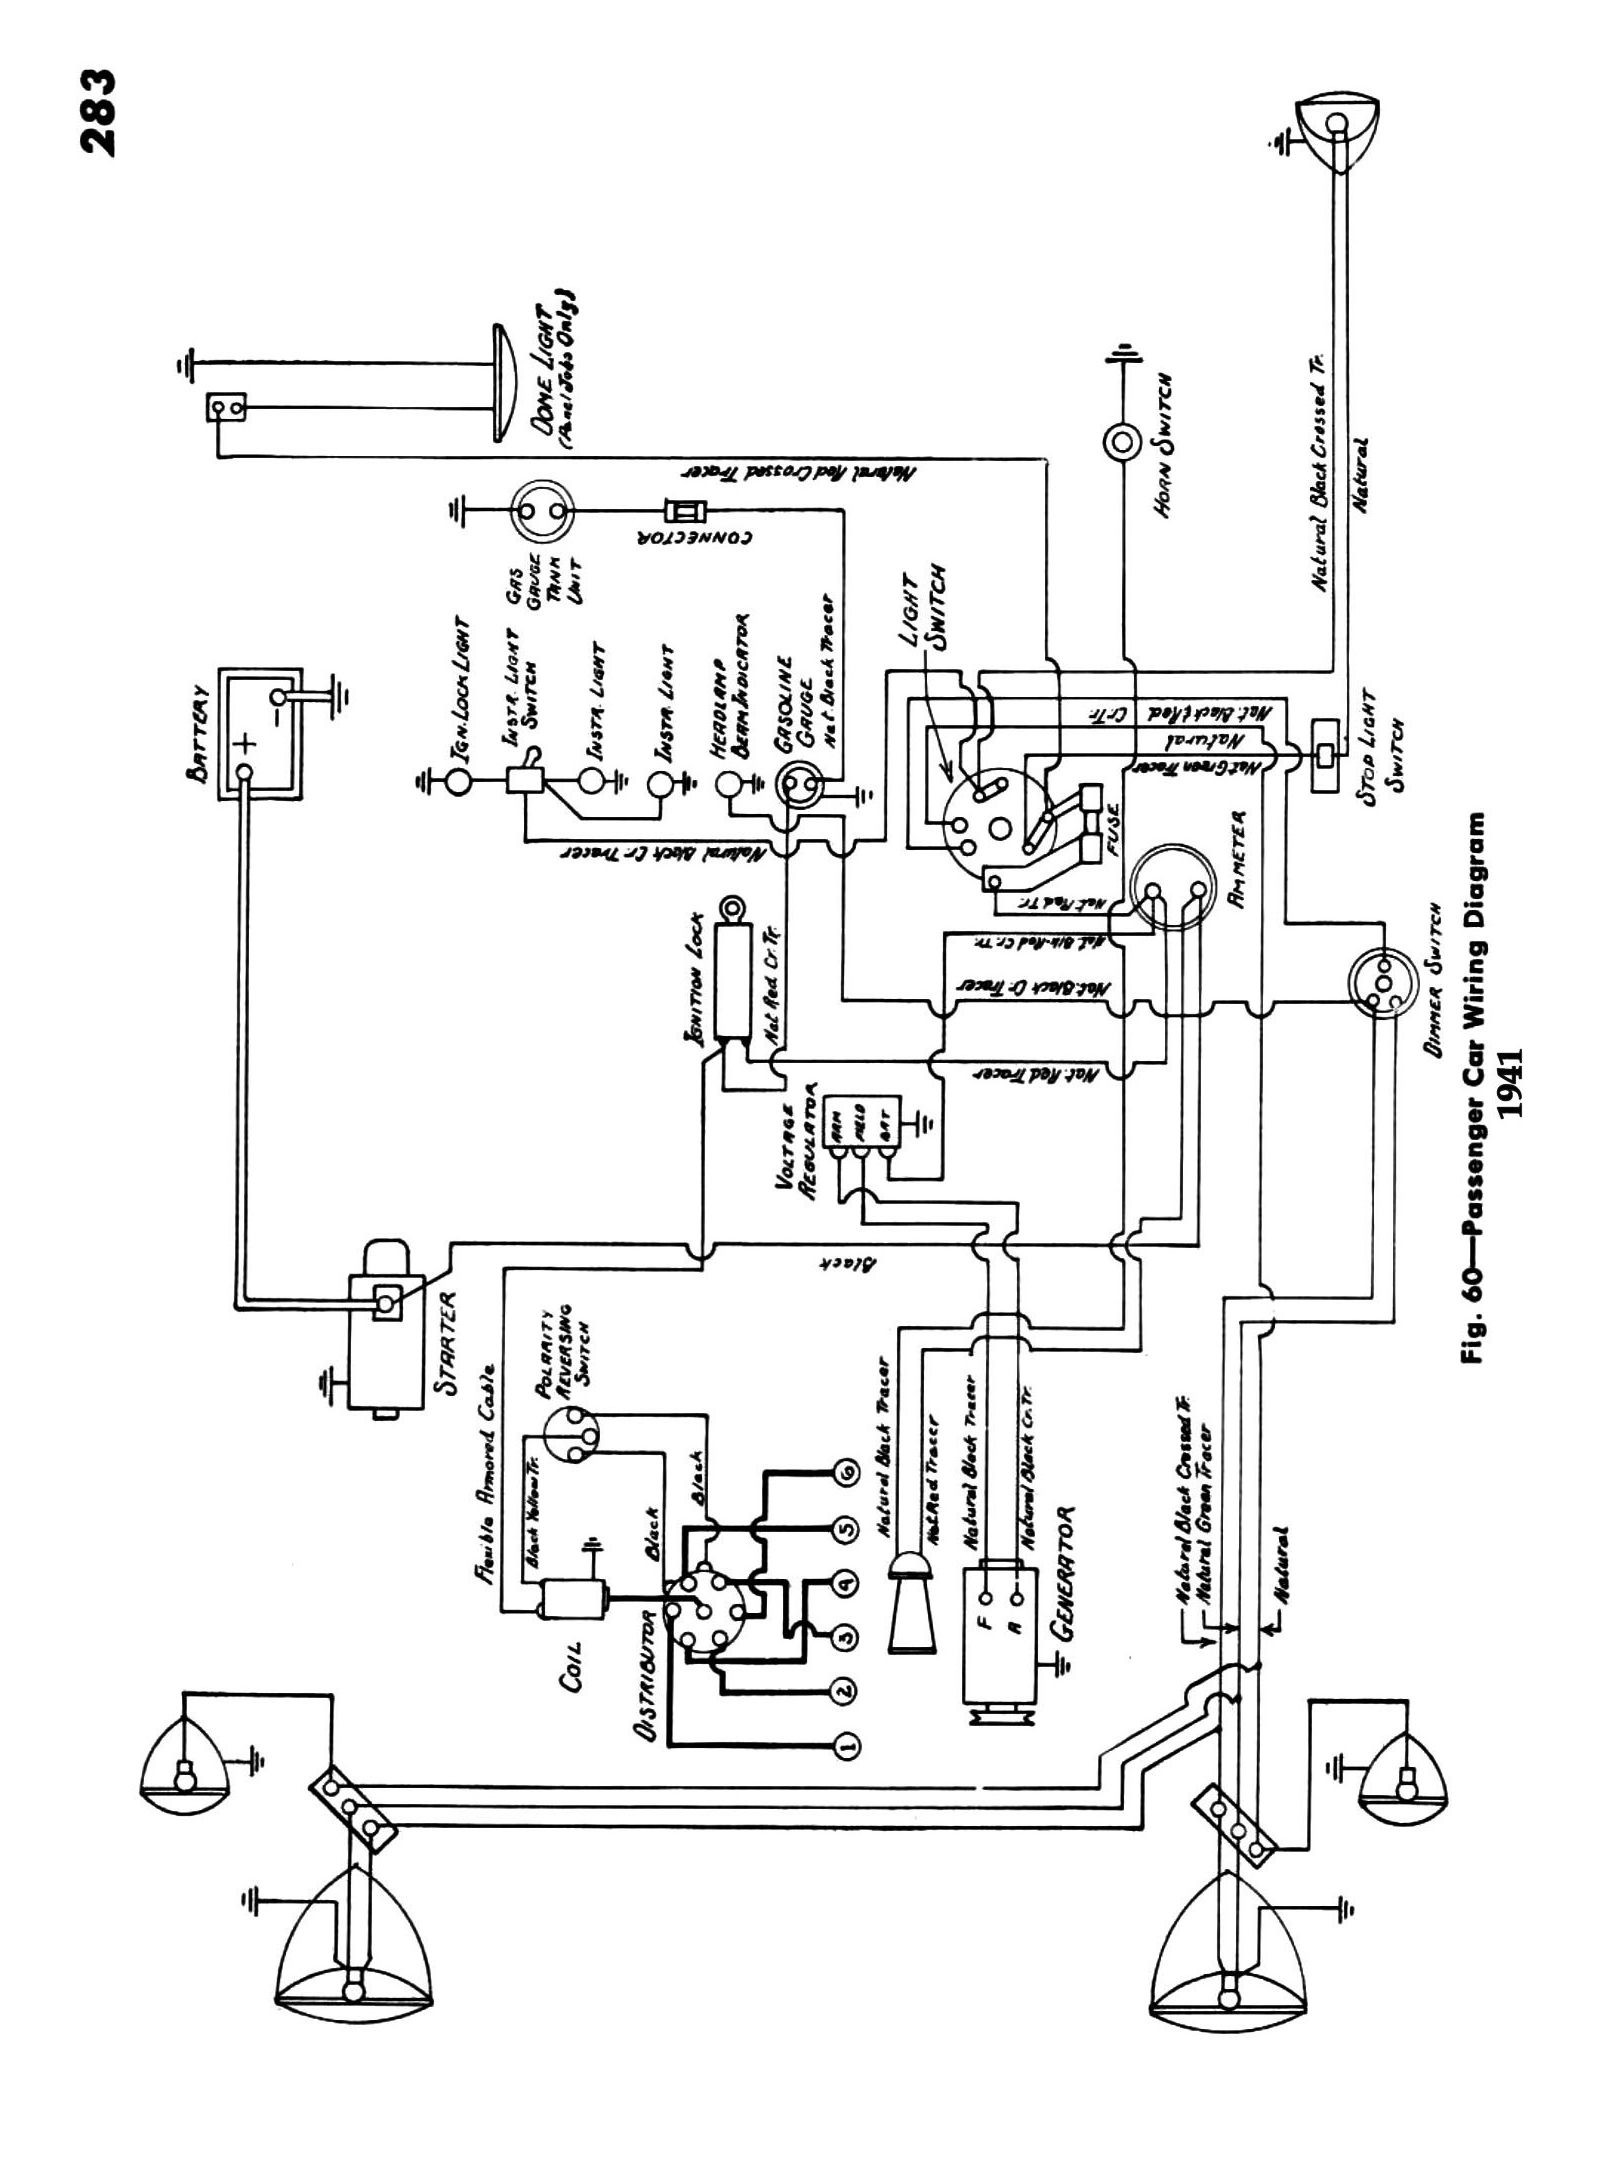 96 Volvo 850 Engine Diagram Wiring Library Car Connector Schematic Semi Truck Power Window Rh Detoxicrecenze Com